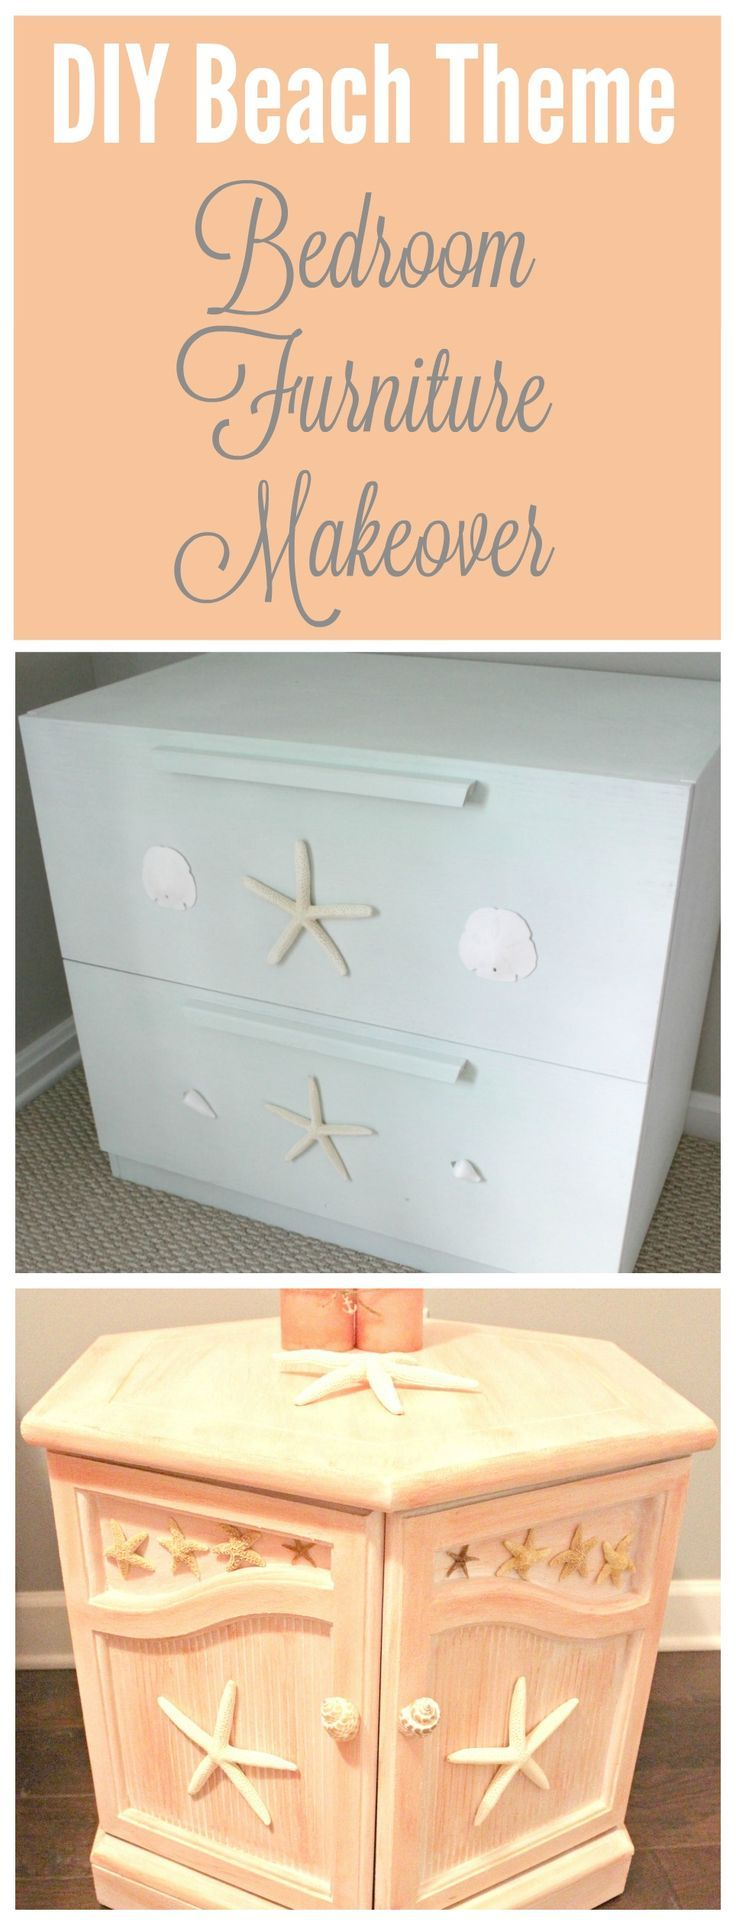 Check out this DIY Bedroom furniture makeover! Full, easy-to-follow tutorial included!  I love using this technique for old furniture makeover projects.  It is so simple and fun.  This creates the perfect beach theme or antique looking furniture for any room in your home! | Chalk paint and color washing projects for DIY home decor